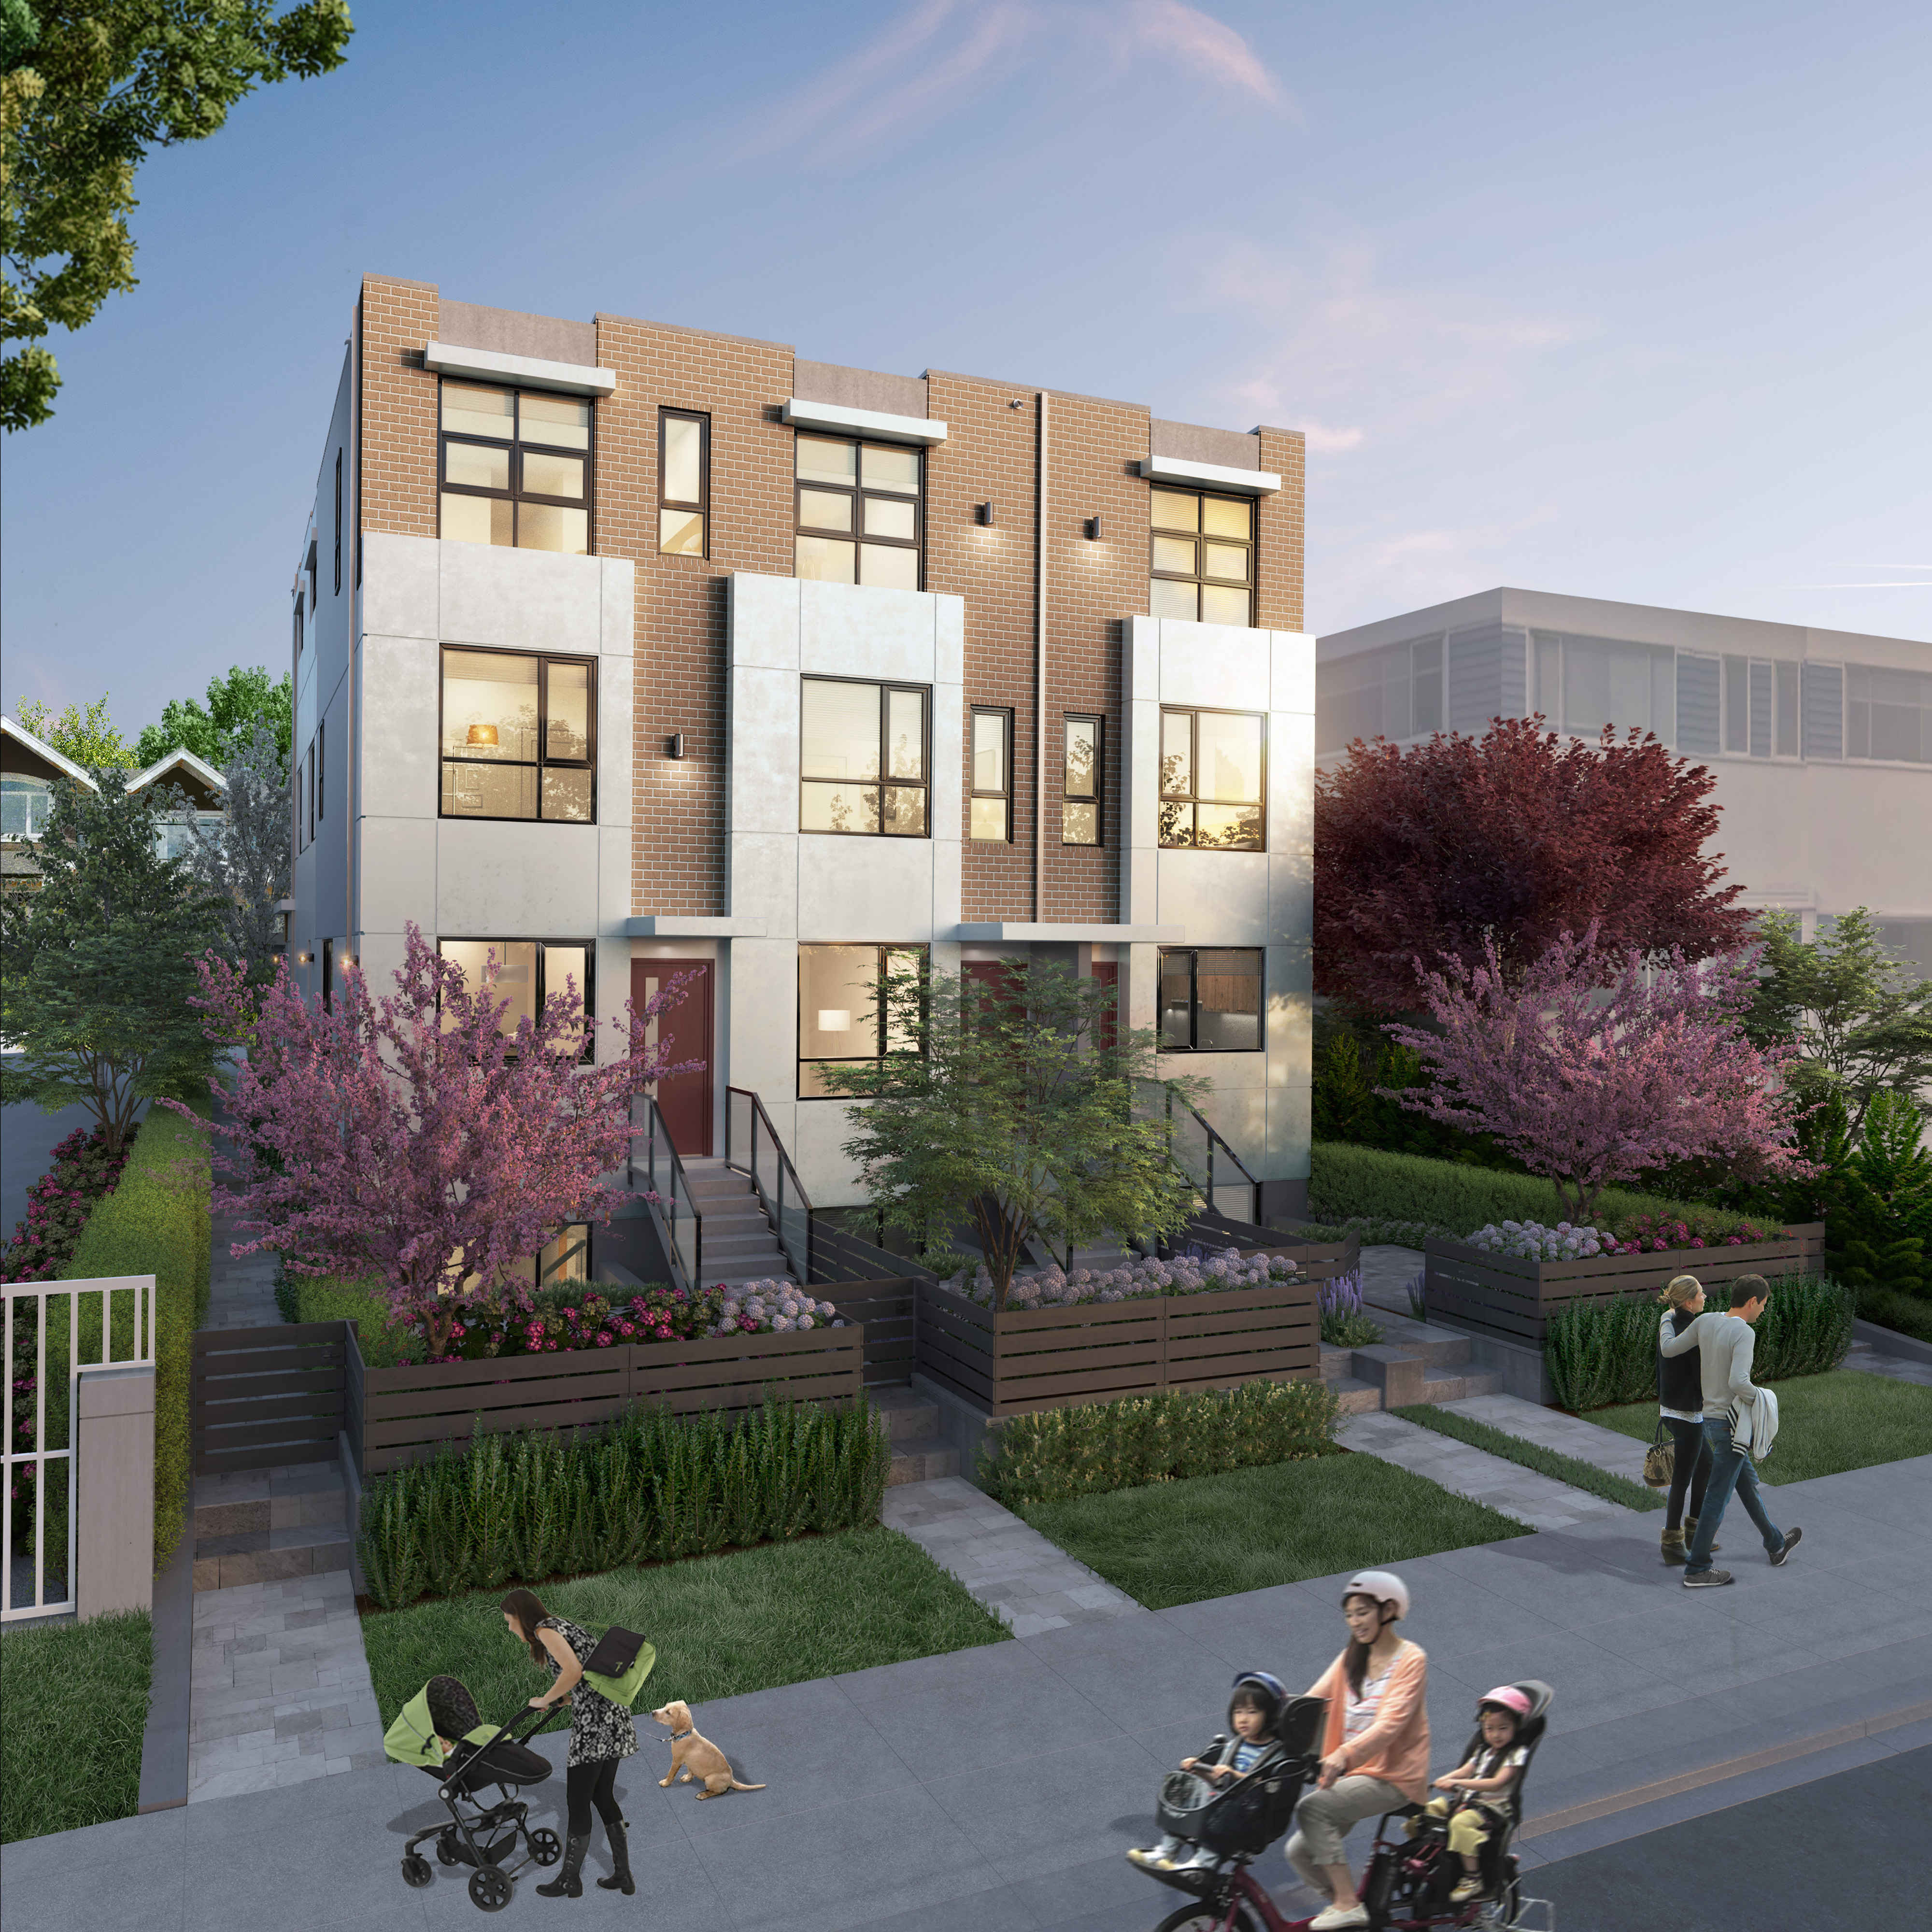 Find Townhomes: Prices, Plans, Availability